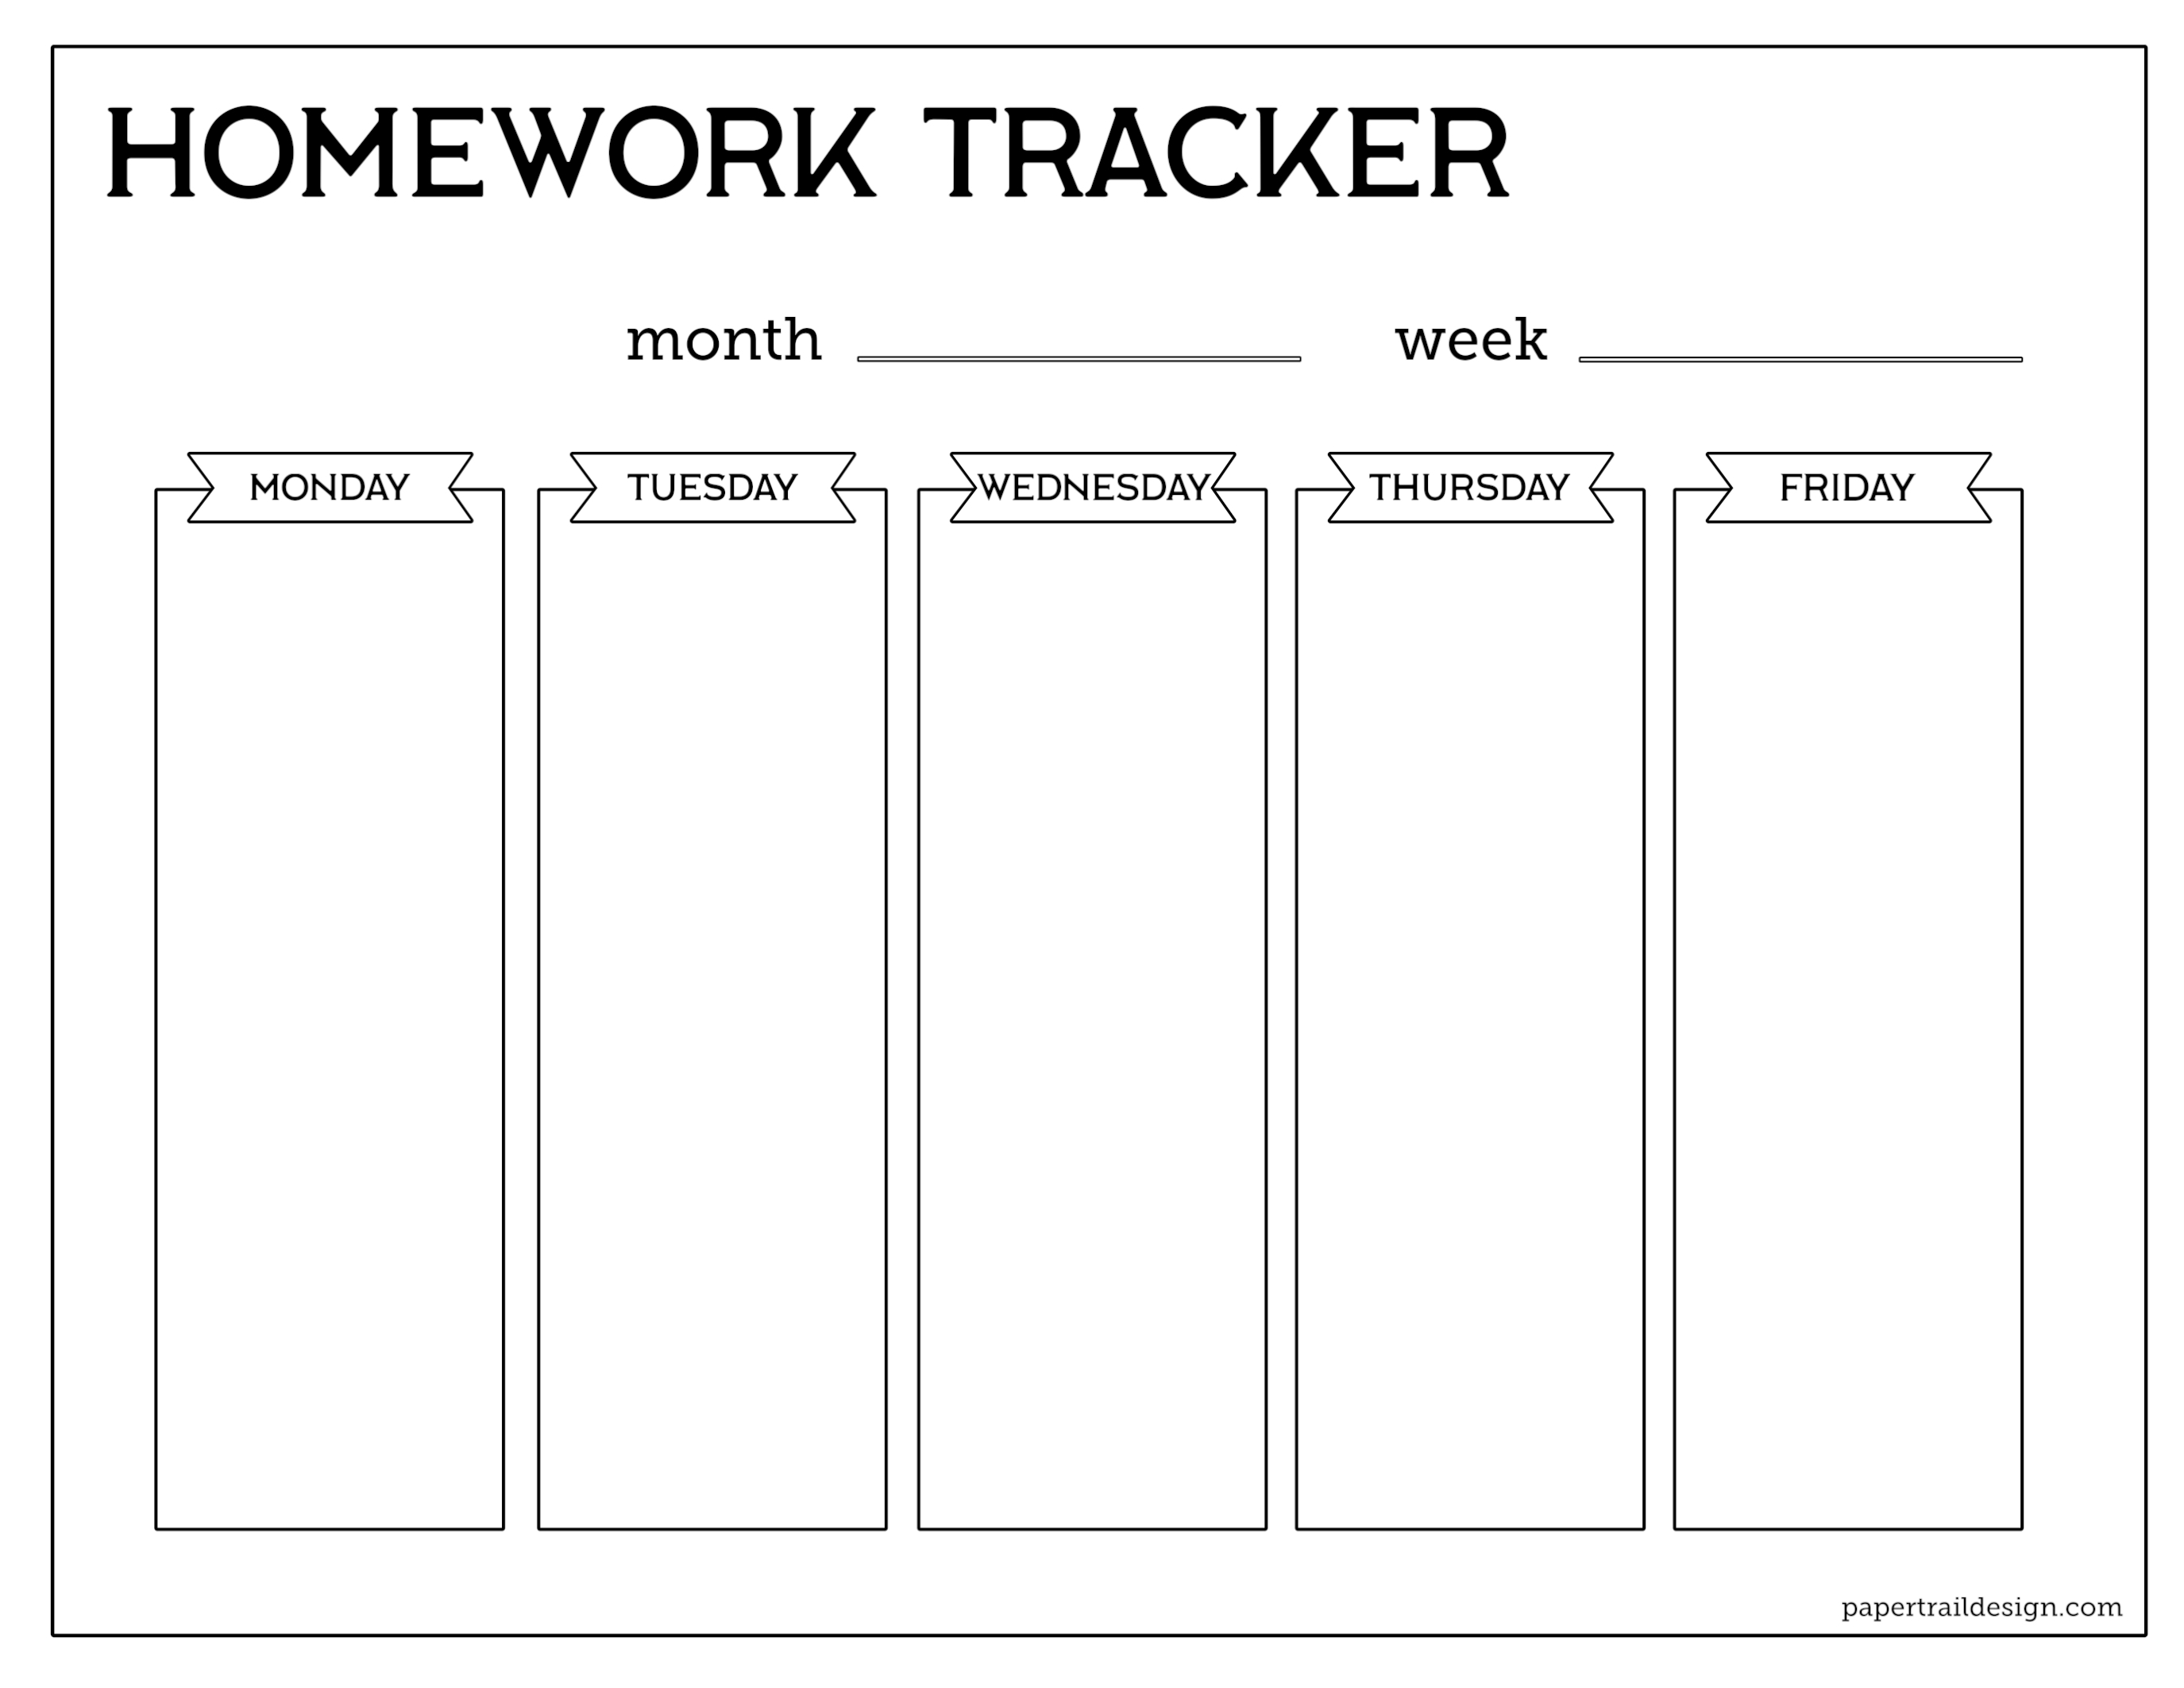 photograph relating to Printable Student Planner Download named Absolutely free Printable Pupil Research Planner Template - Paper